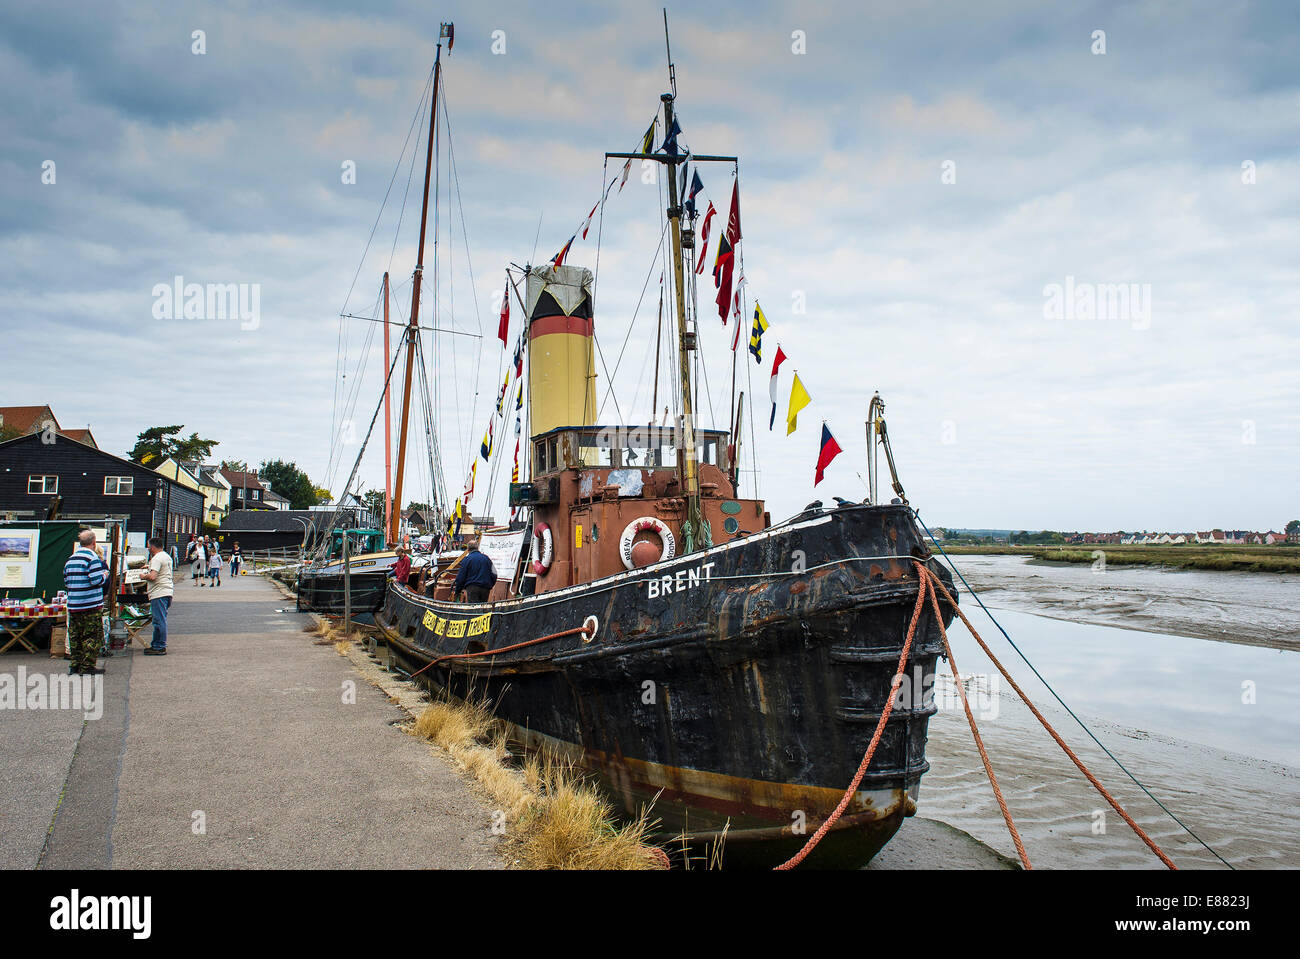 The Steam Tug Brent moored at the Hythe Quay in Maldon on the Blackwater River in Essex. - Stock Image